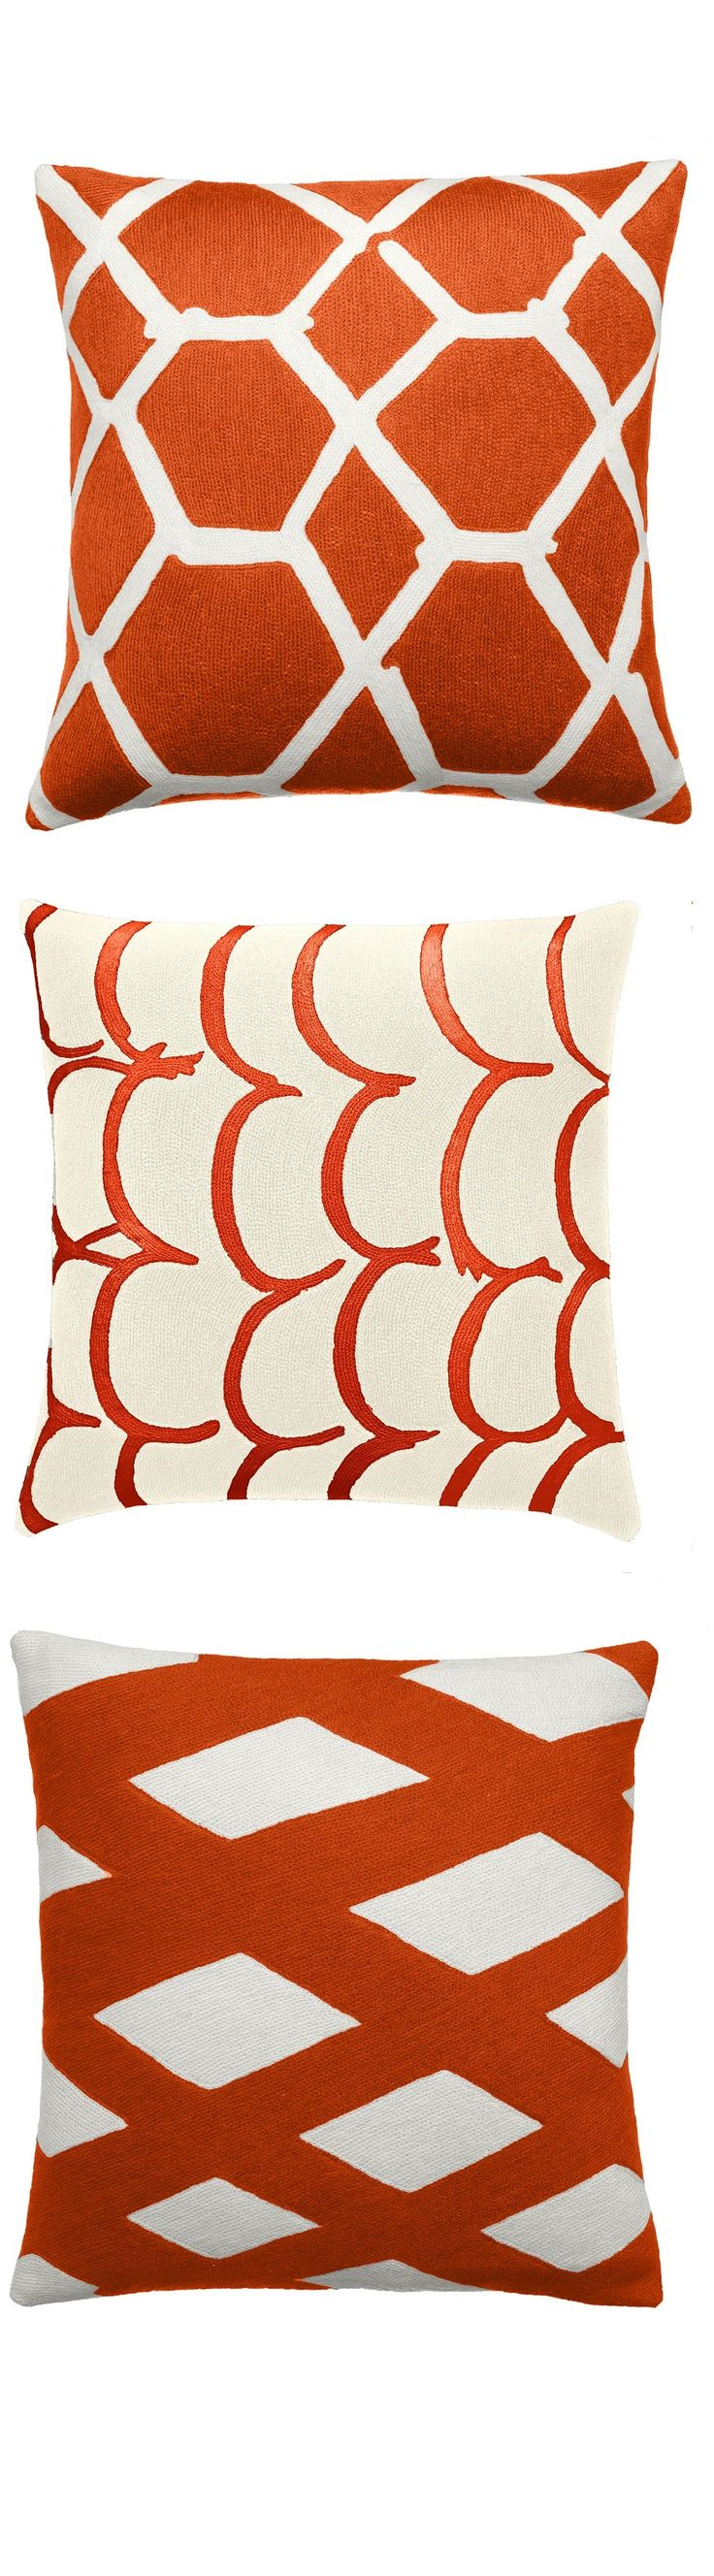 best  orange pillow cases ideas on pinterest  orange pillow  - orange pillows orange throw pillows orange modern pillows by instyle